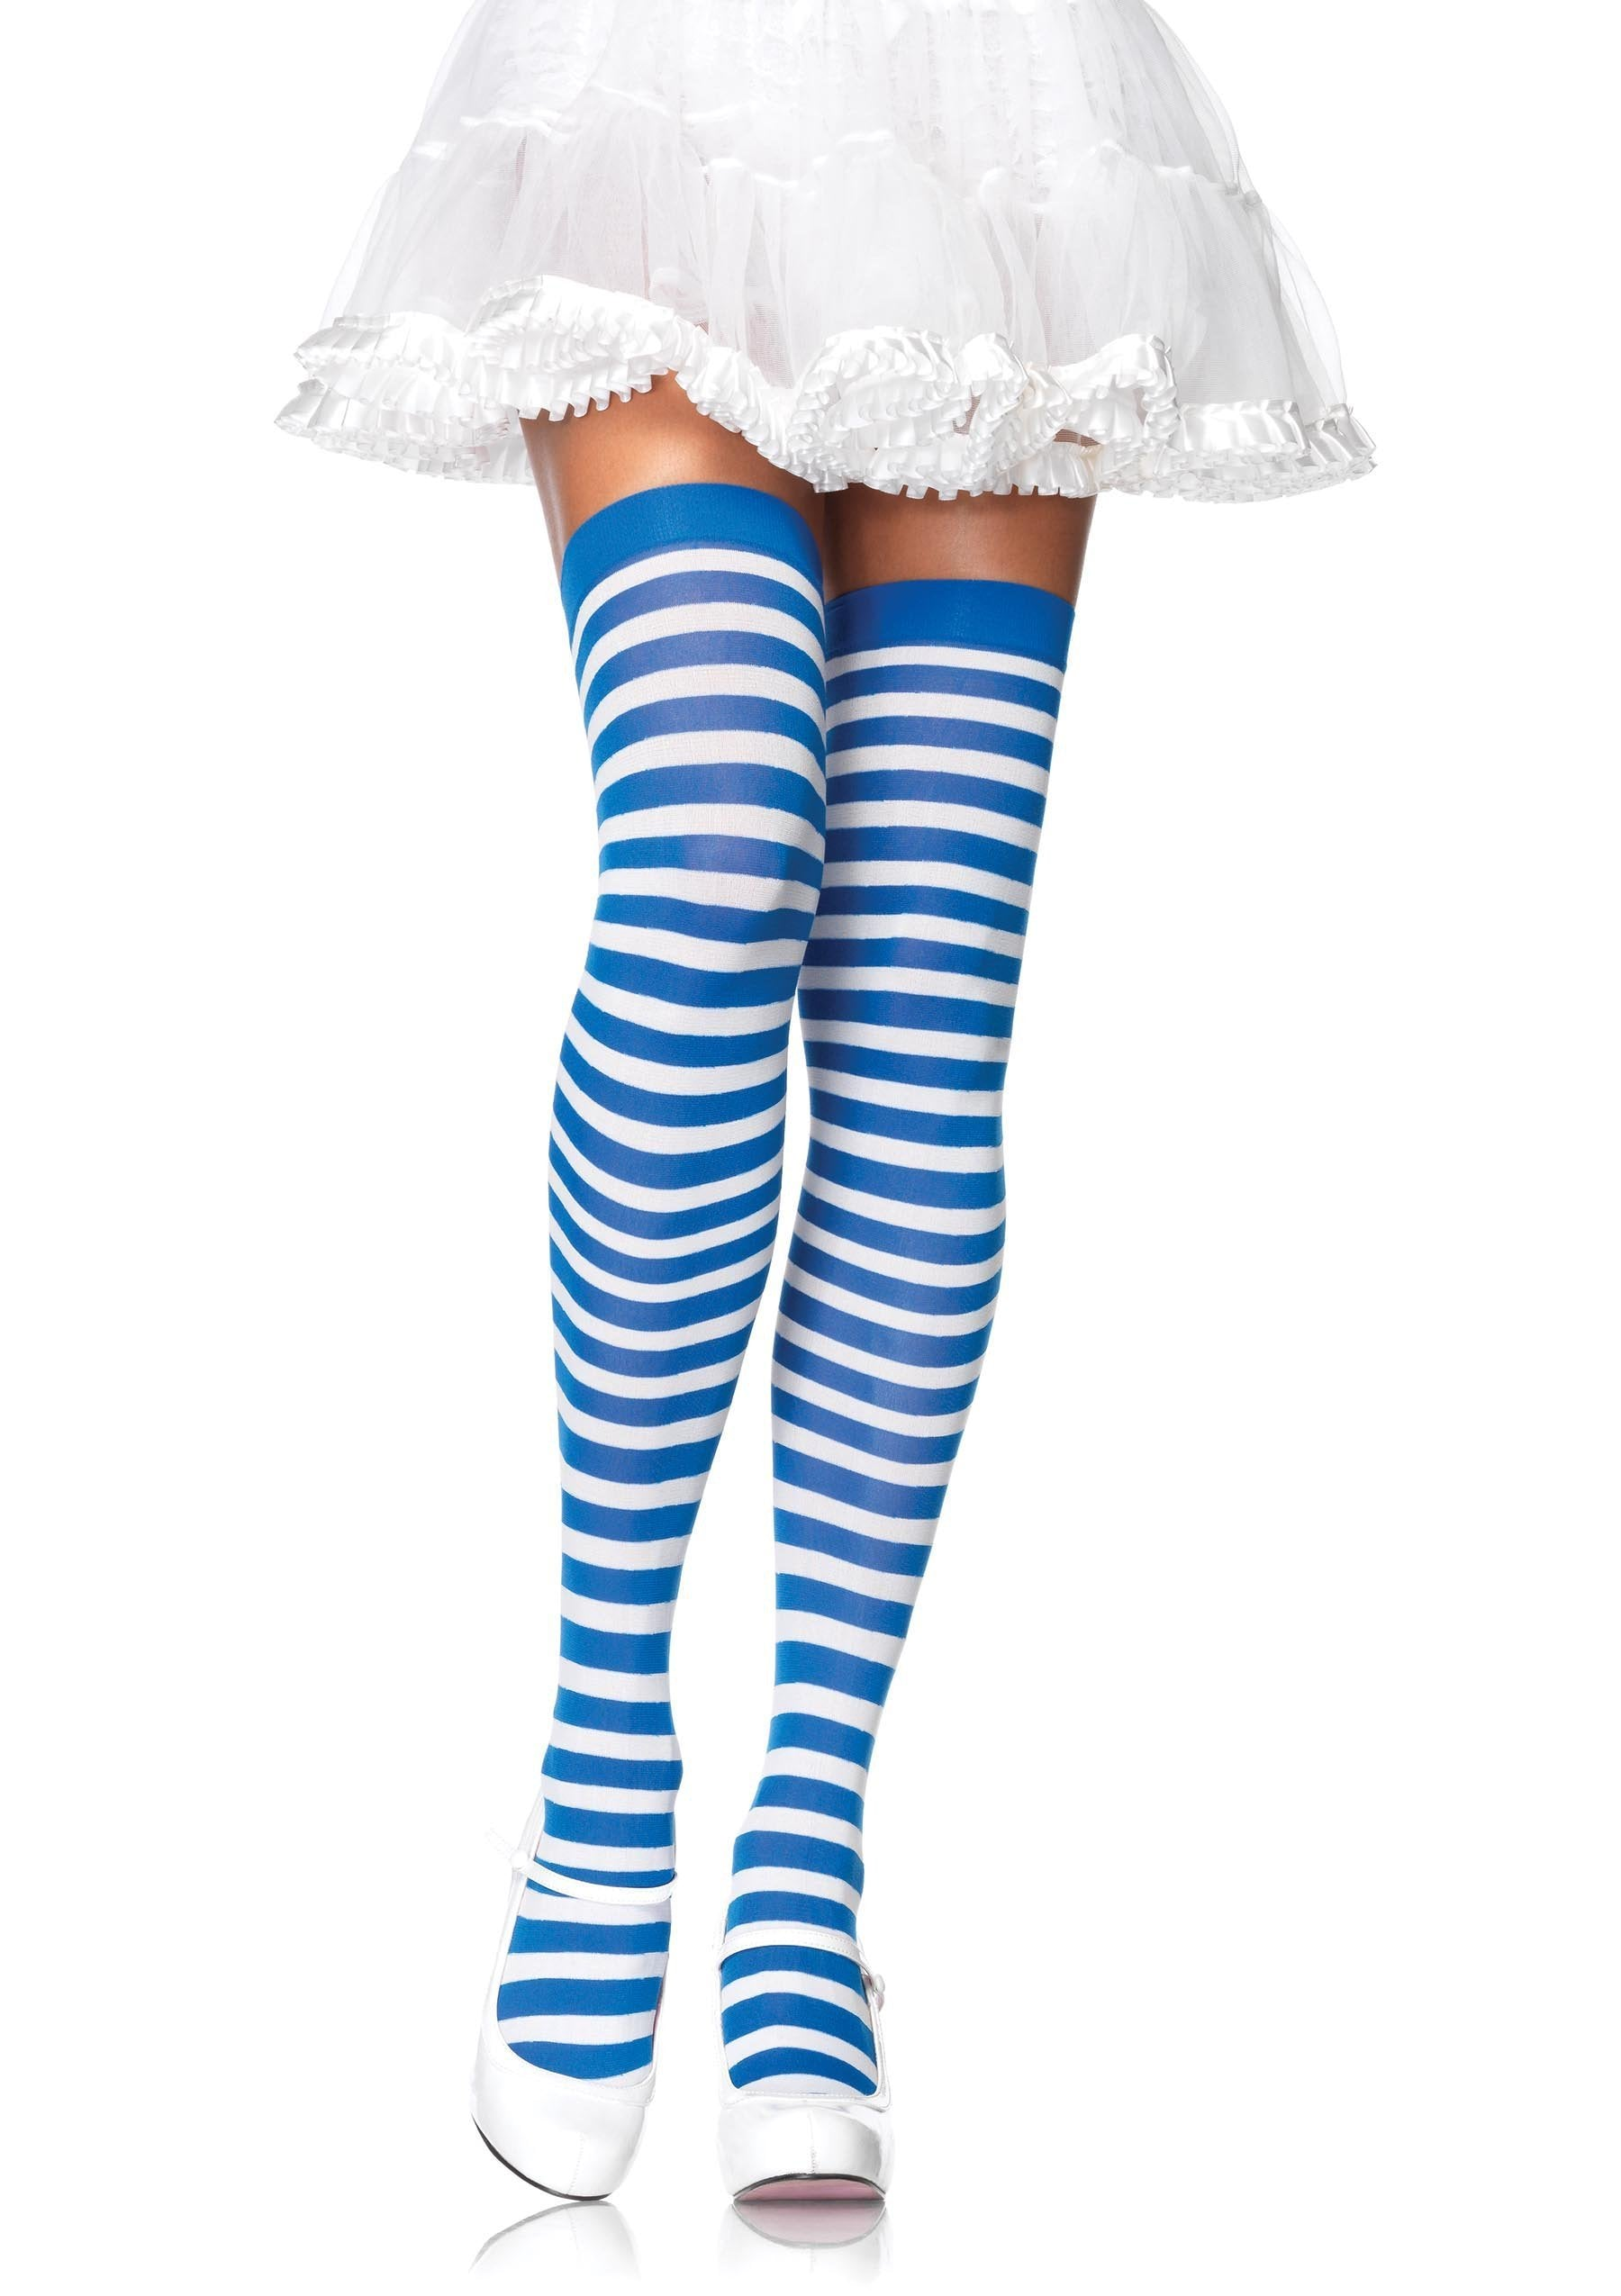 Leg Avenue Costume Accessories BLUE/WHITE / O/S Striped Thigh High Stockings